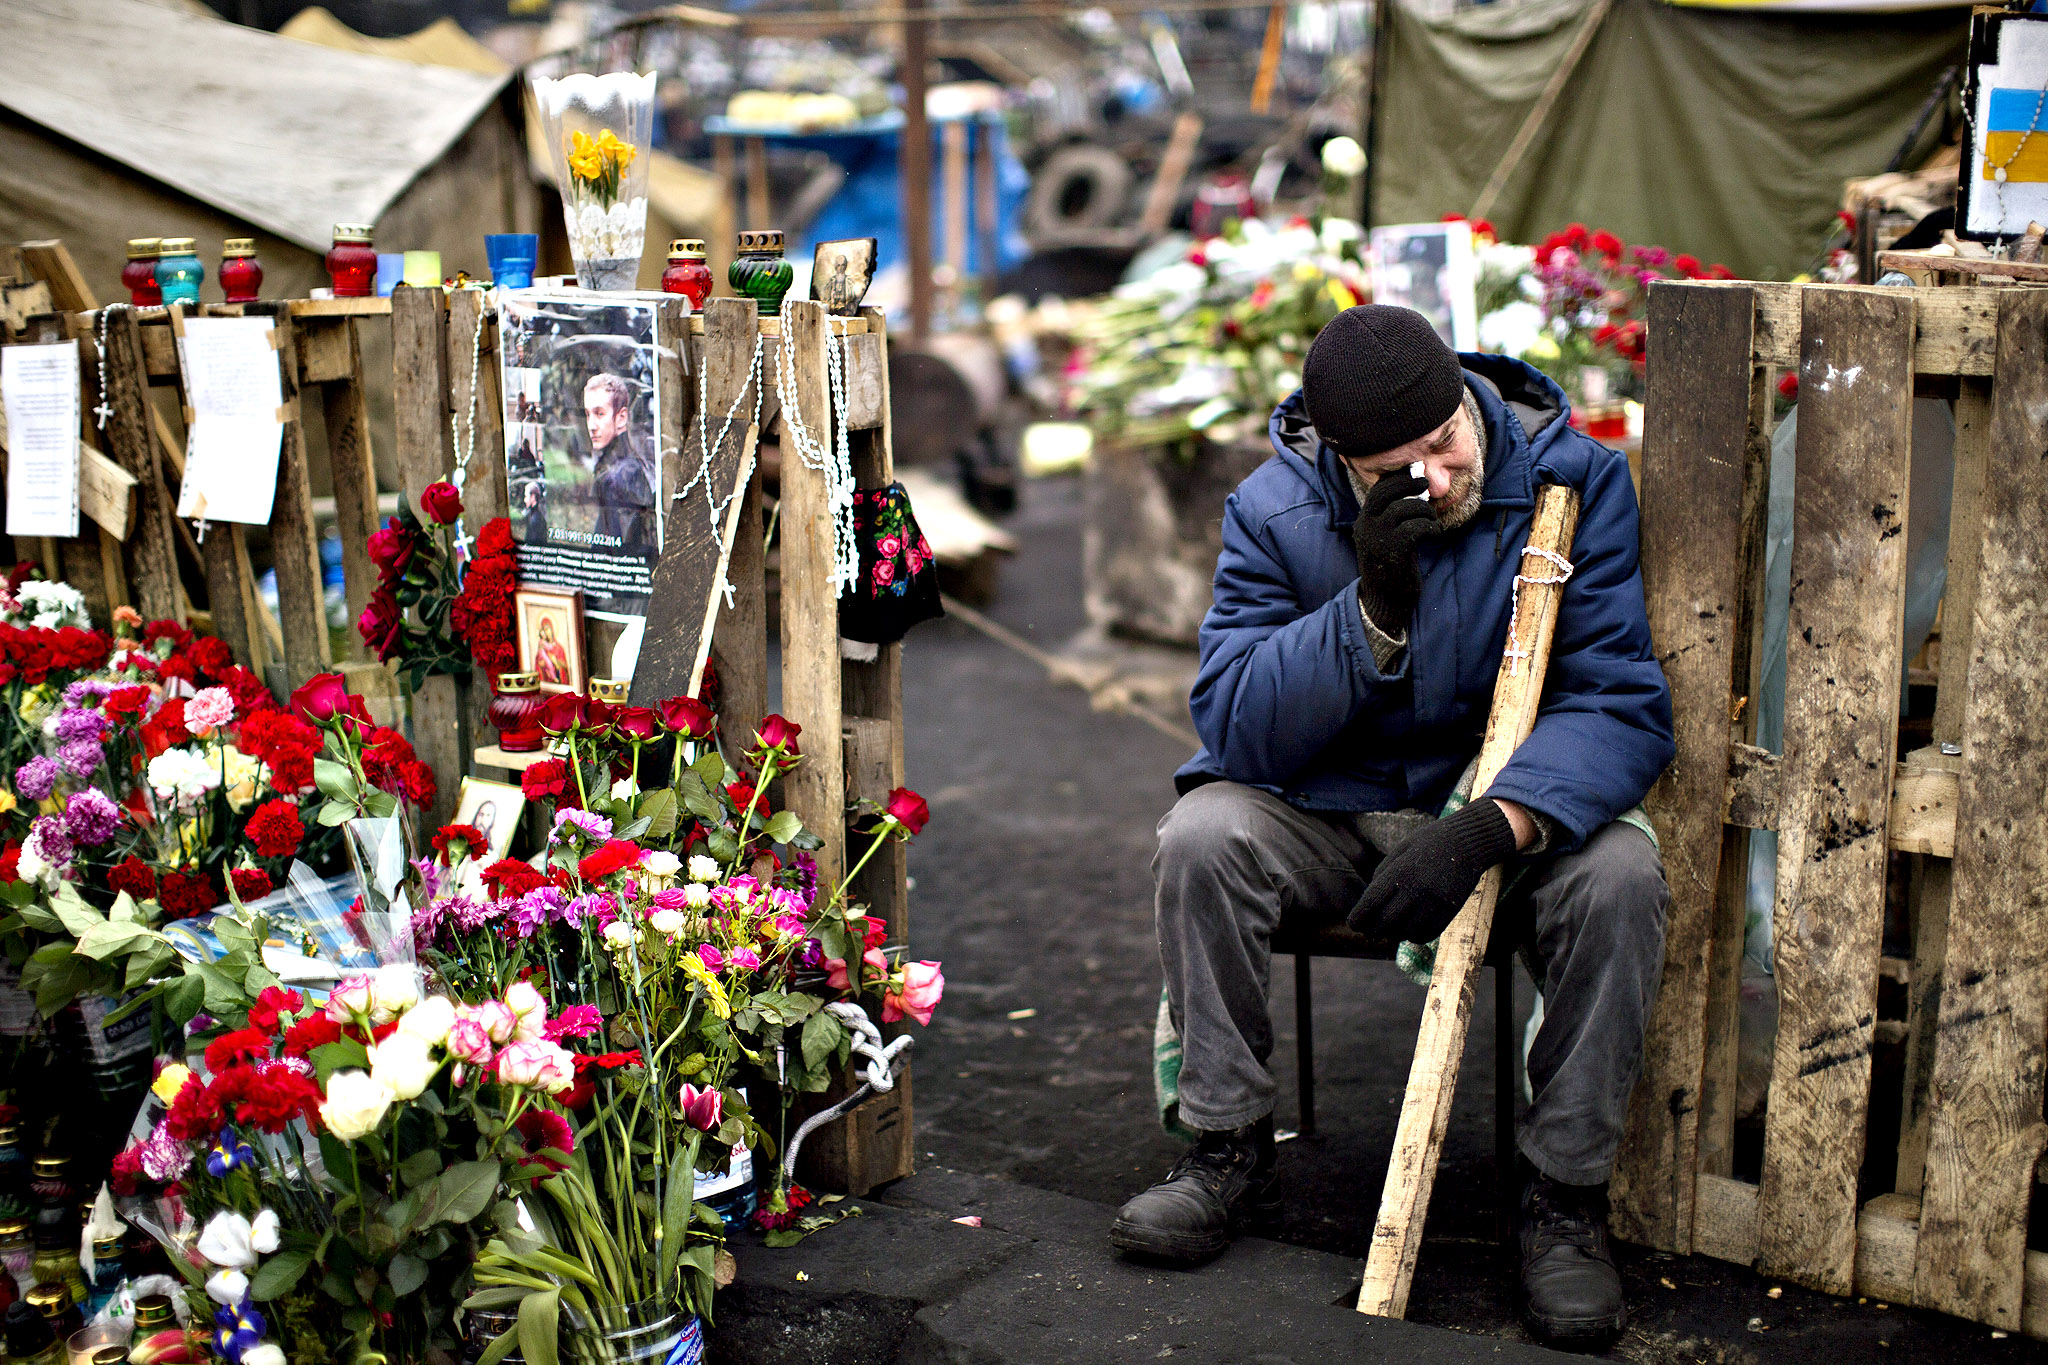 An anti-Yanukovych protester cries near a memorial for the people killed in clashes with the police at Kiev's Independence Square, the epicenter of the country's current unrest, Ukraine, Tuesday, Feb. 25, 2014. The Ukrainian parliament on Tuesday delayed the formation of a new government, reflecting political tensions and economic challenges following the ouster of the Russia-backed president. Parliament speaker Oleksandr Turchinov, who was named Ukraine's interim leader after President Viktor Yanukovych fled the capital, said that a new government should be in place by Thursday, instead of Tuesday, as he had earlier indicated.